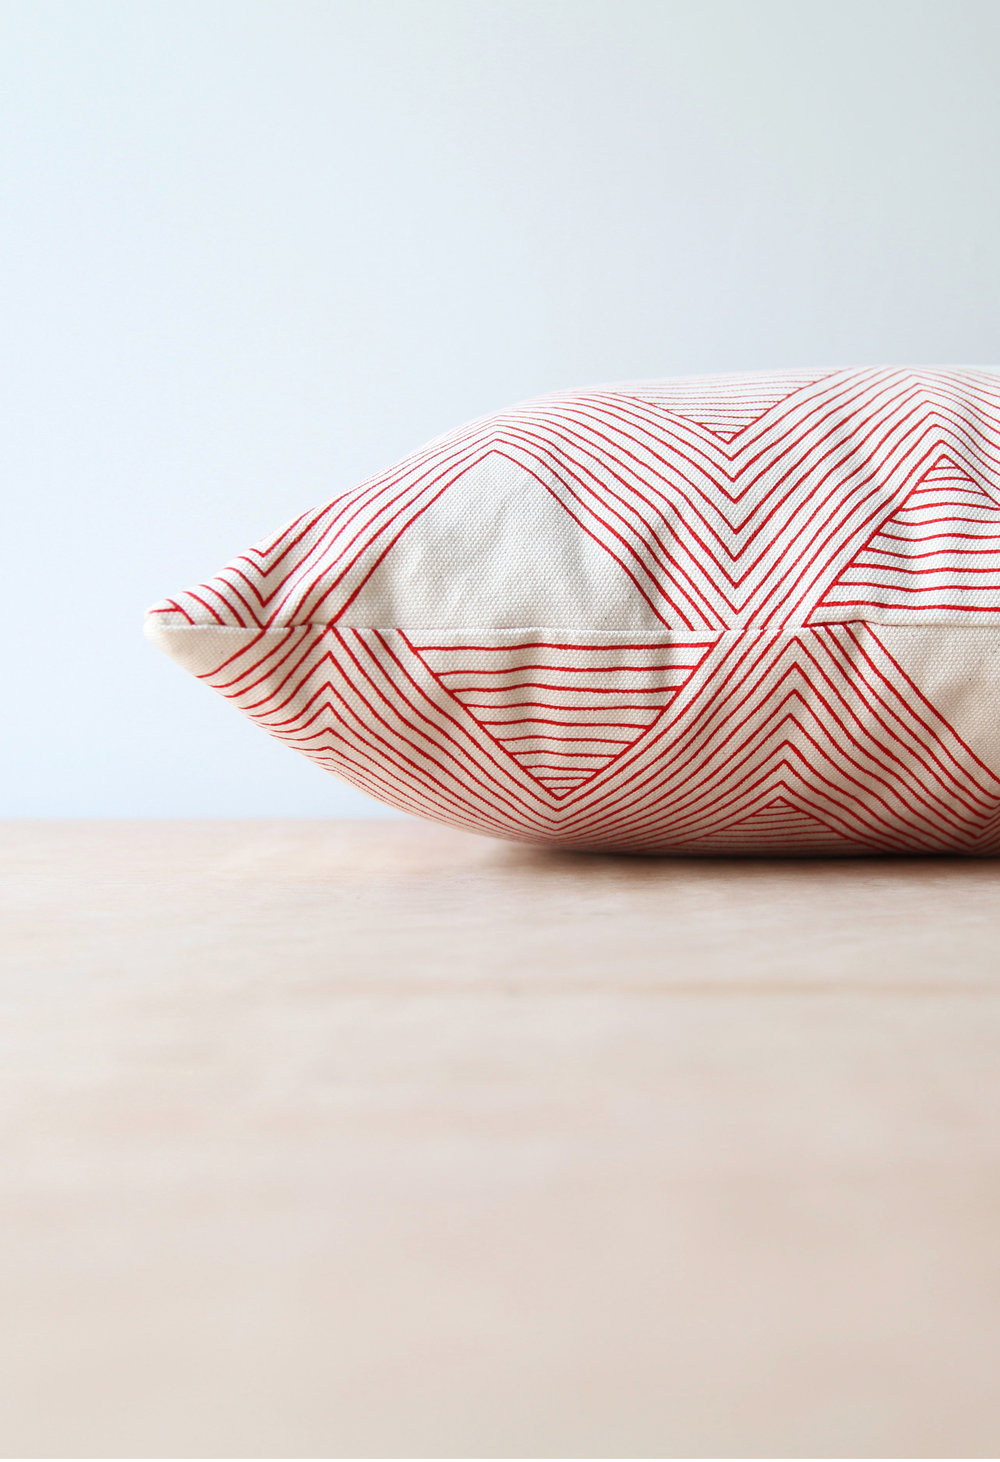 Makers Market: Handcrafted home goods. Made in New York